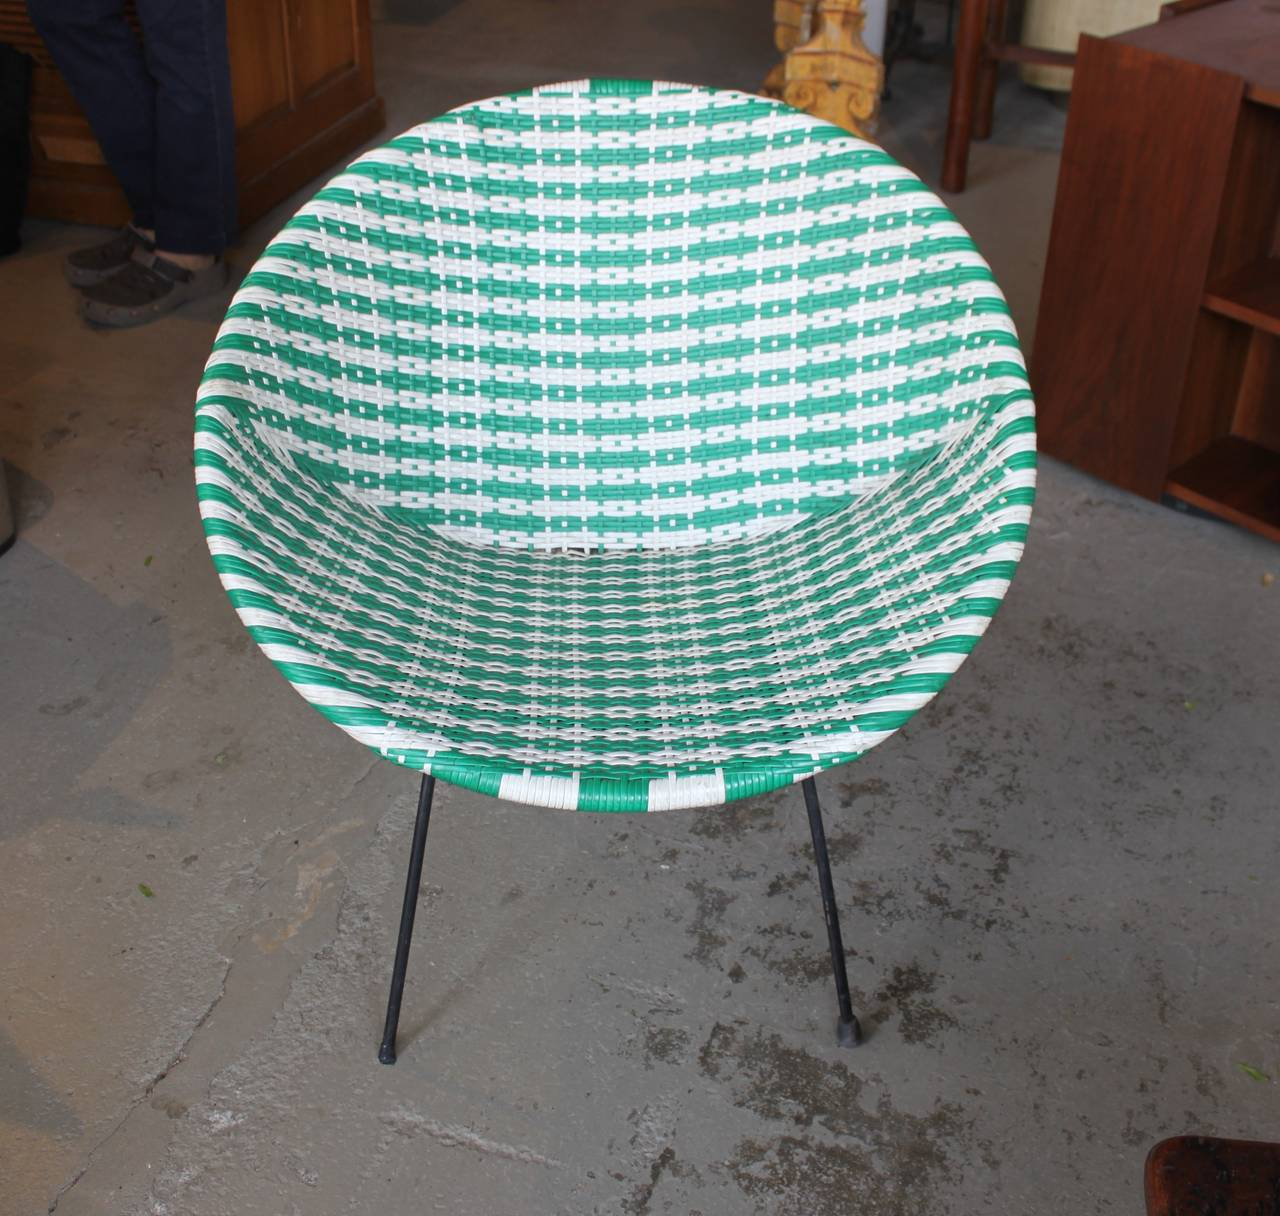 Vintage Green and White Woven Round Womb Chair, 1960s at 1stdibs